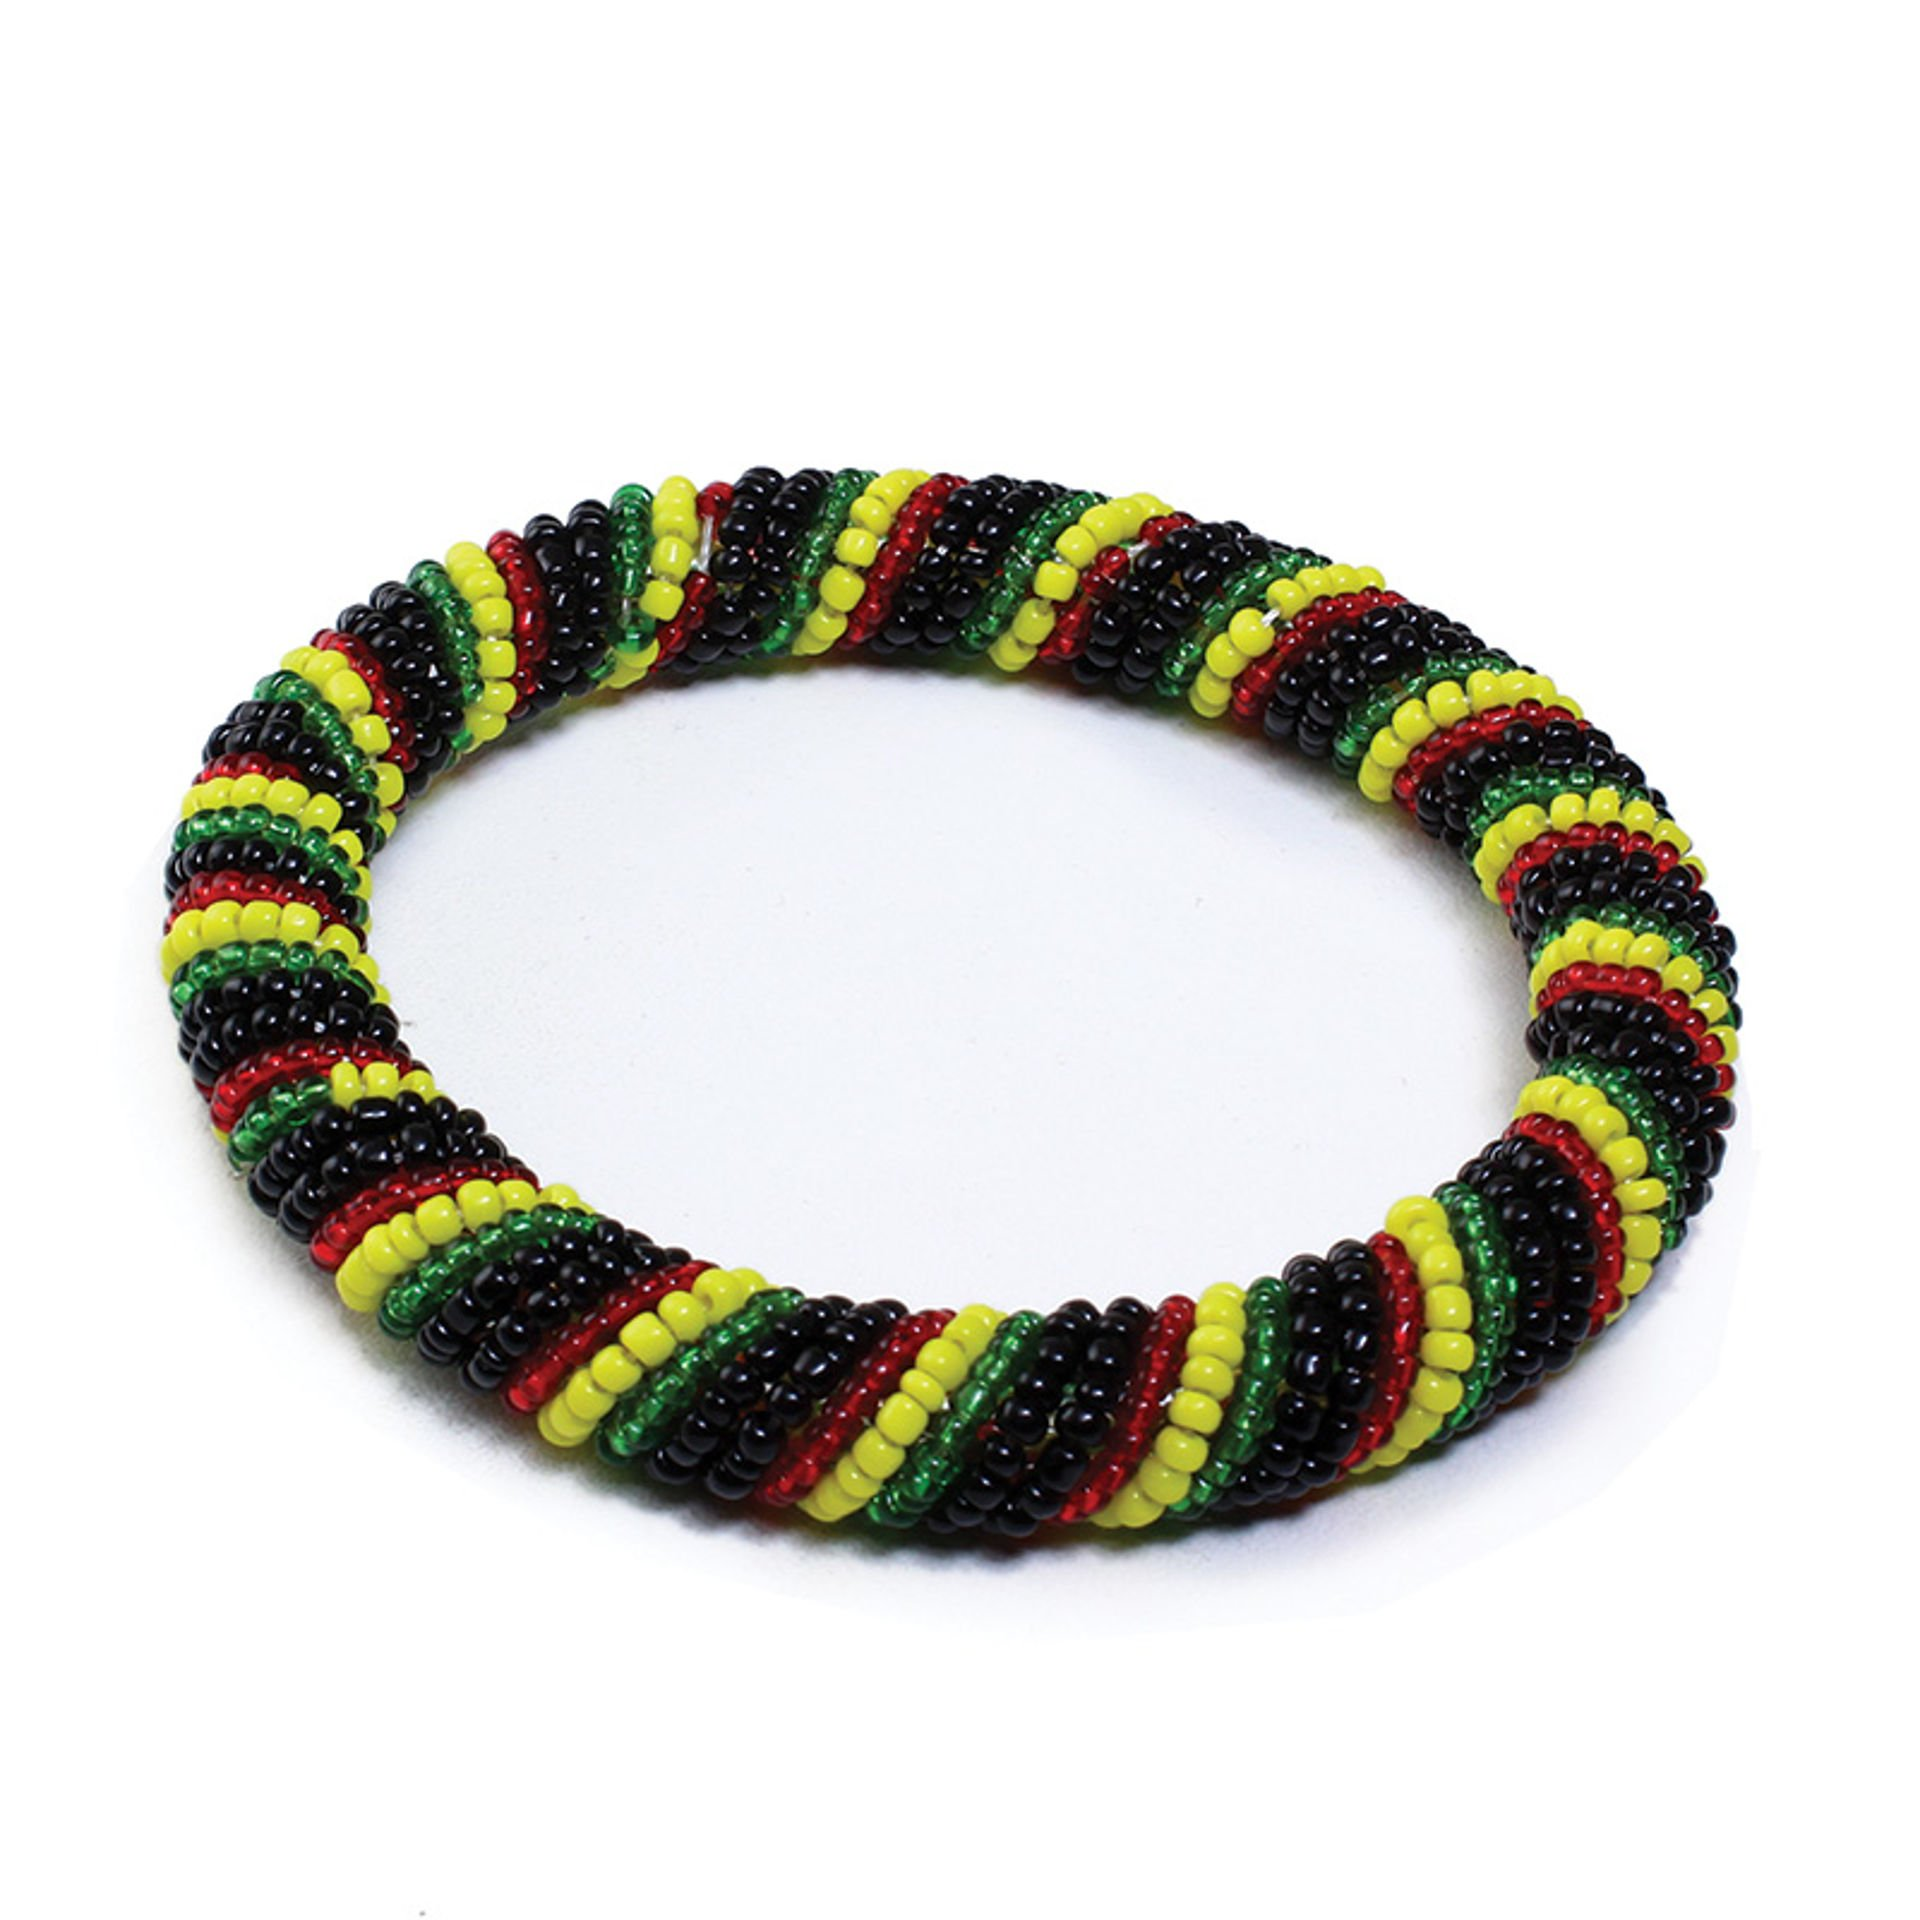 Picture of Maasai Beaded Bracelet - Round Rasta